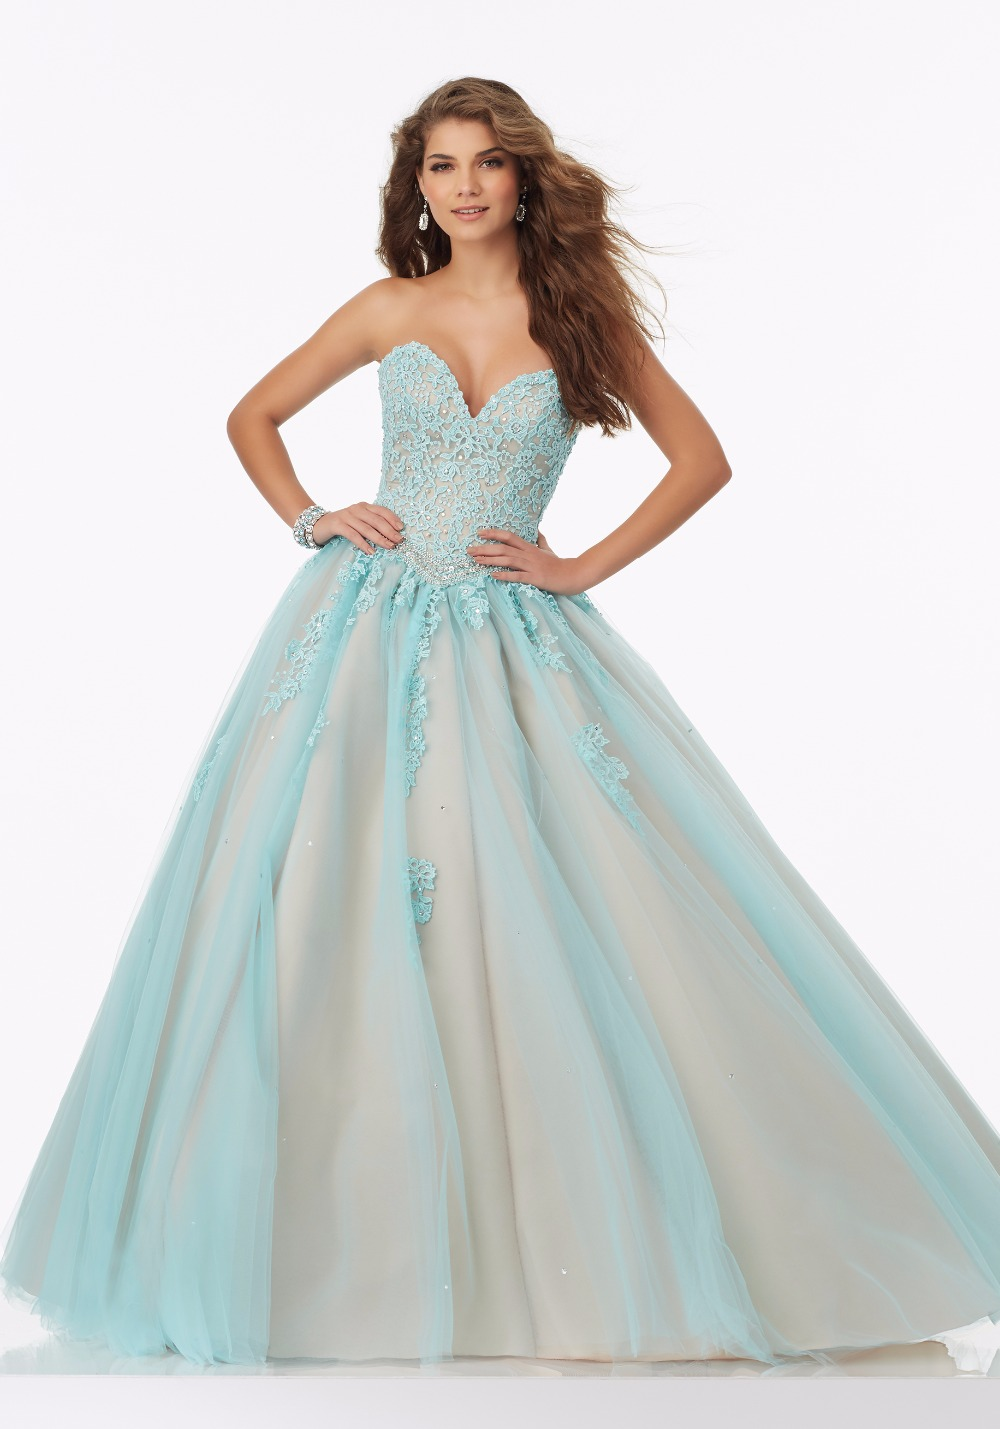 White Ball Gown Prom Dresses | Dress images